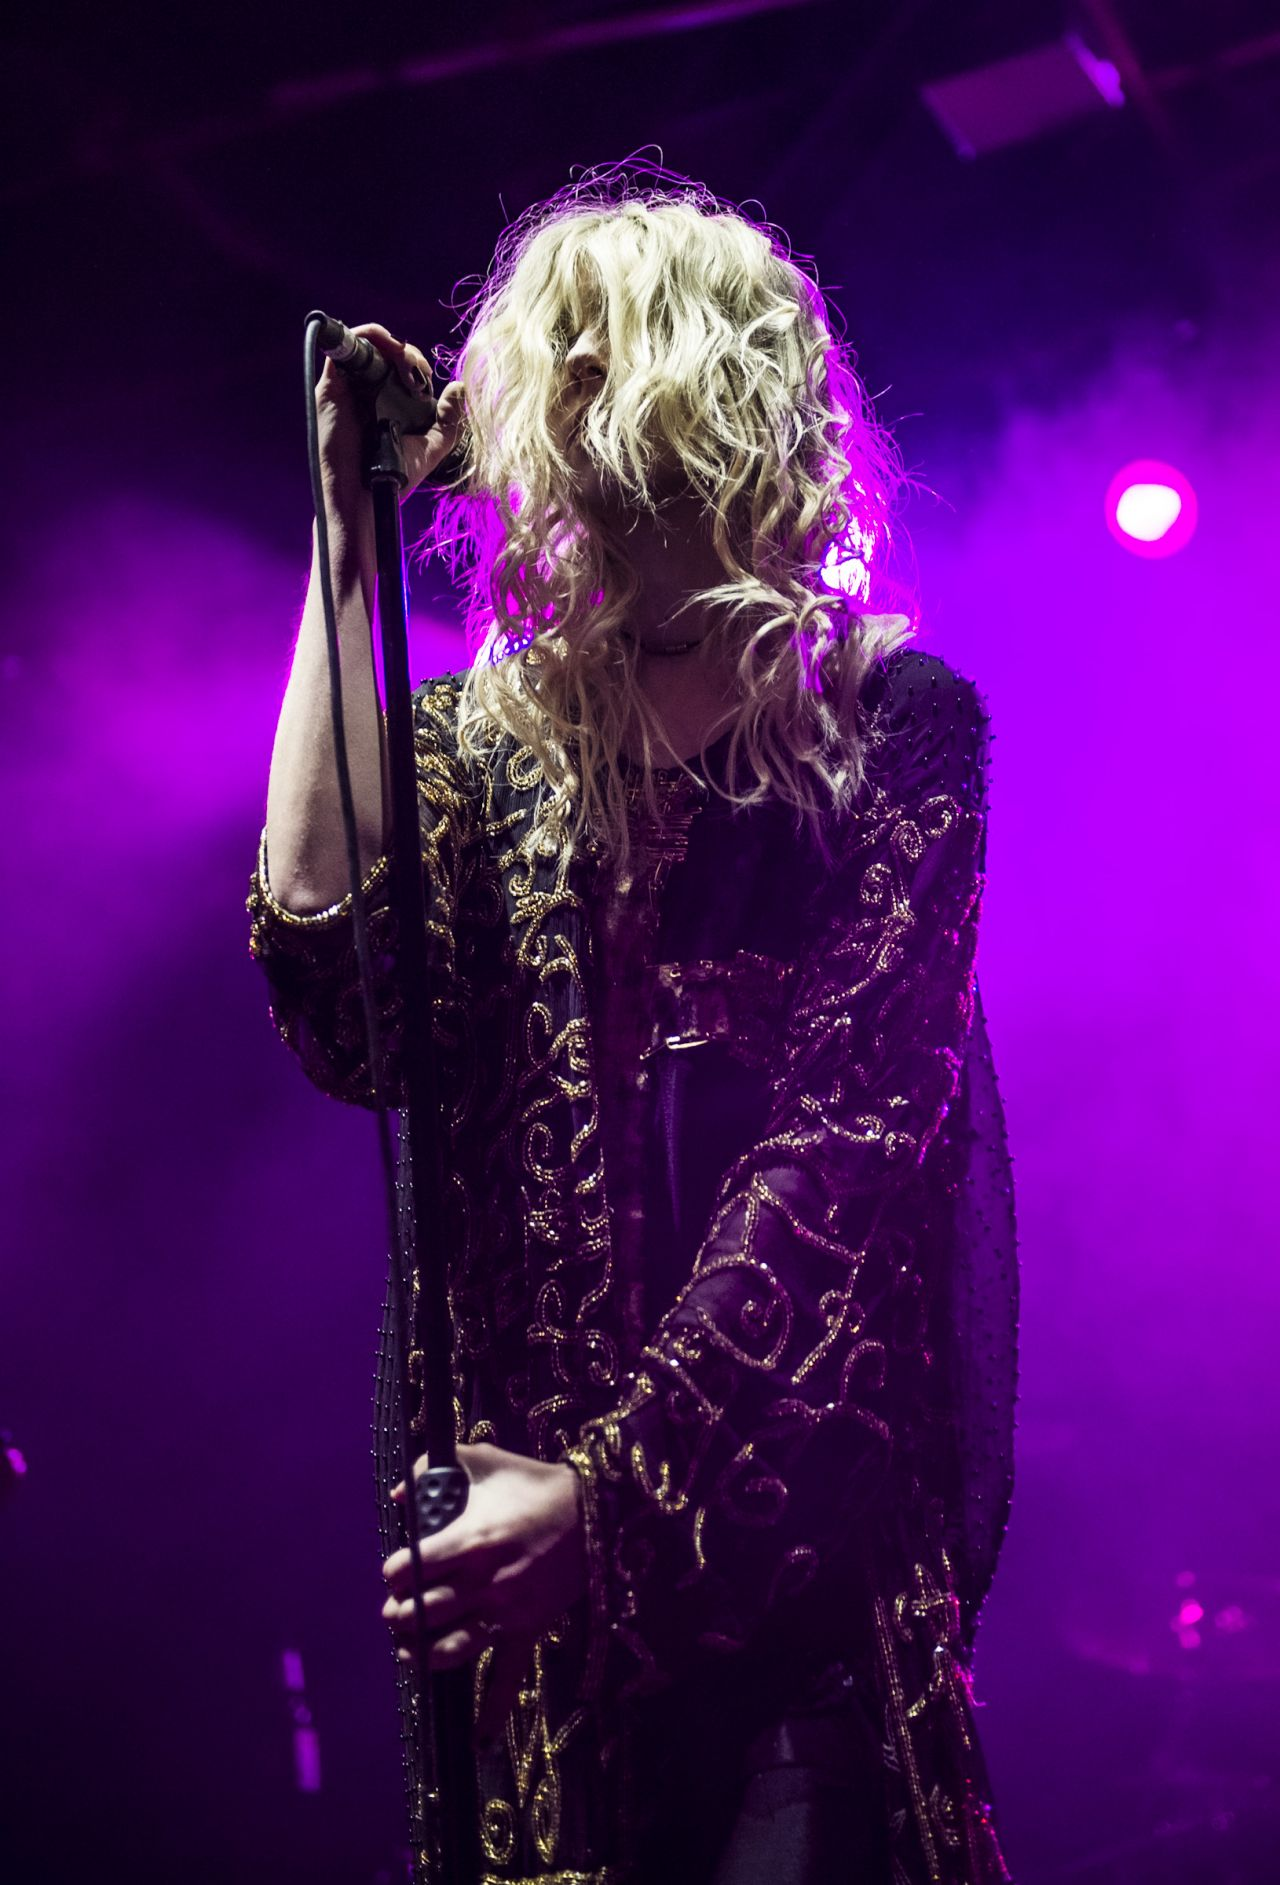 Taylor Momsen Performs at 2014 iHeartRadio Music Festival ... |Taylor Momsen 2014